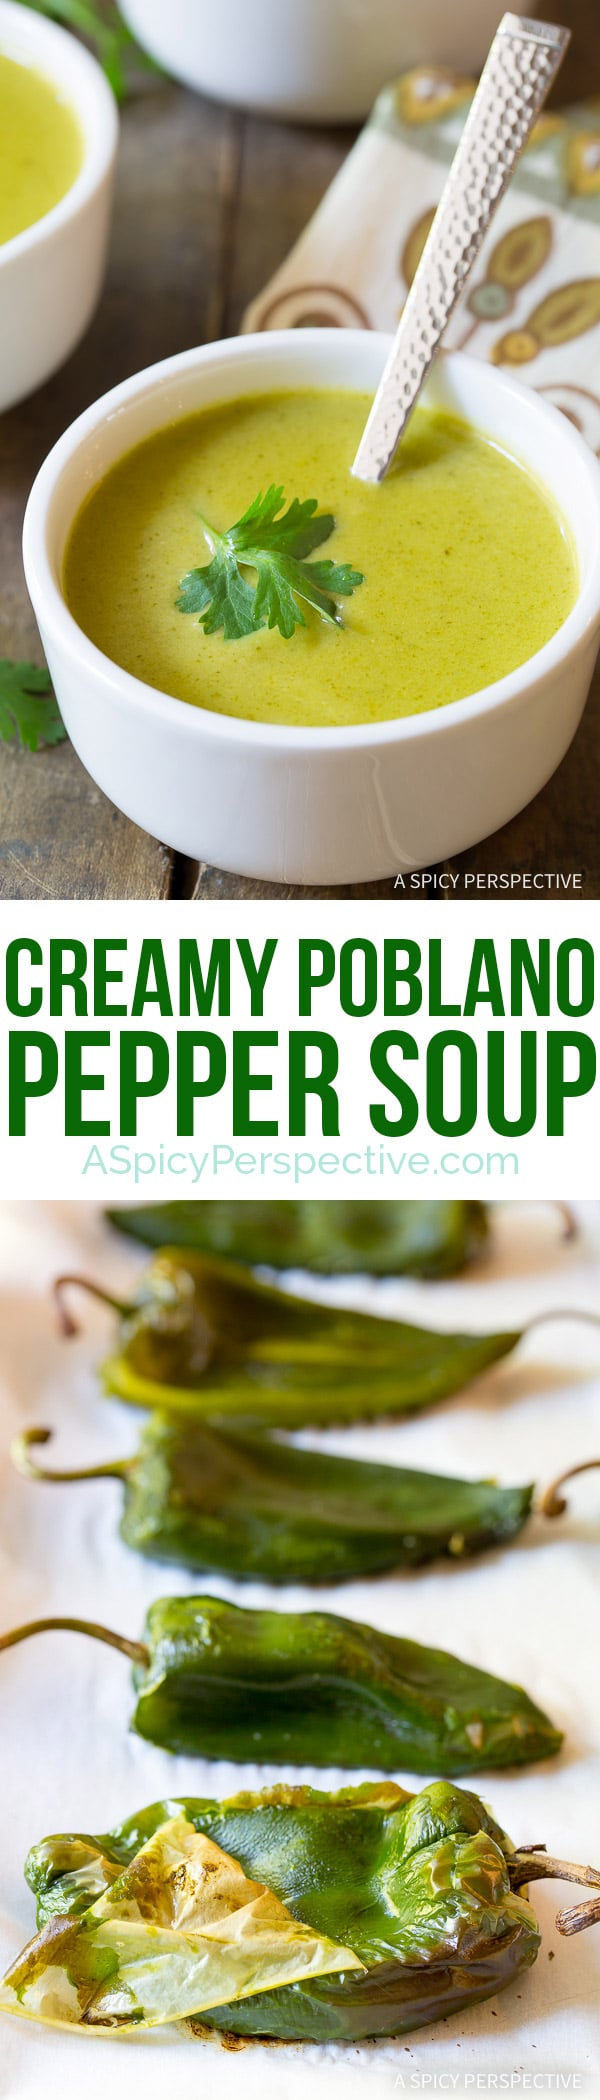 Mild and Smoky - Creamy Poblano Pepper Soup Recipe on ASpicyPerspective.com